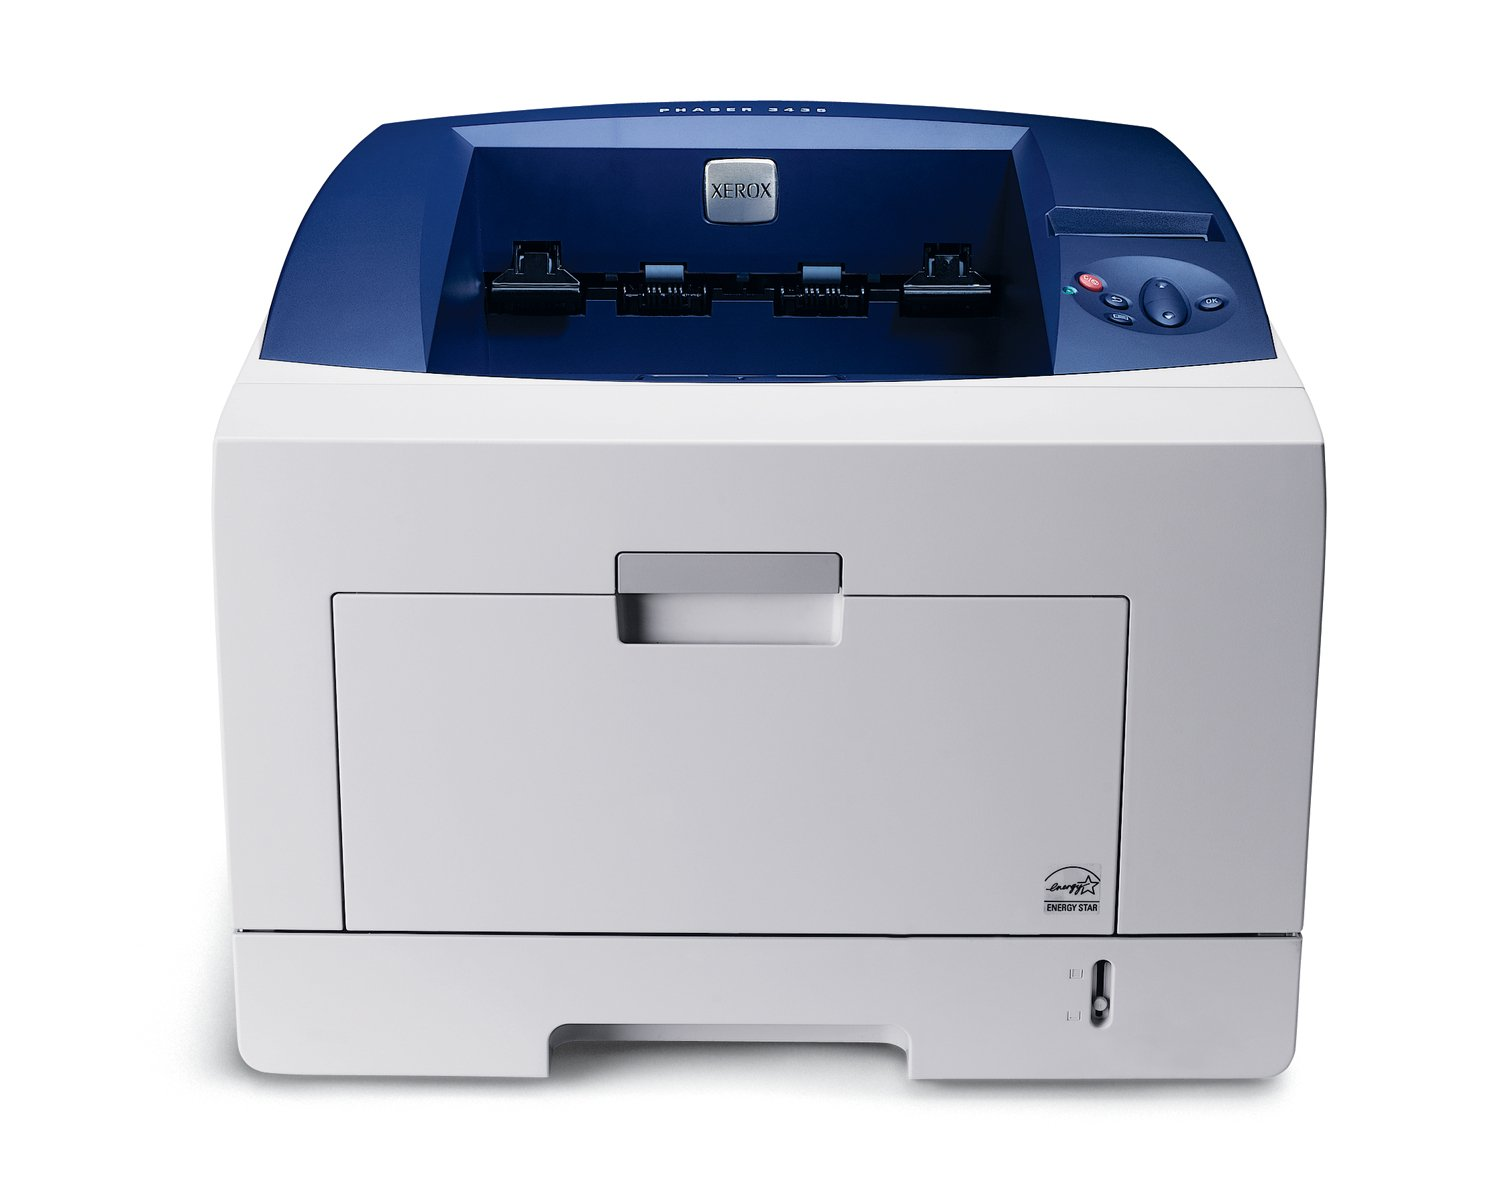 Xerox Phaser 3435 Driver Downloads | Download Drivers ...